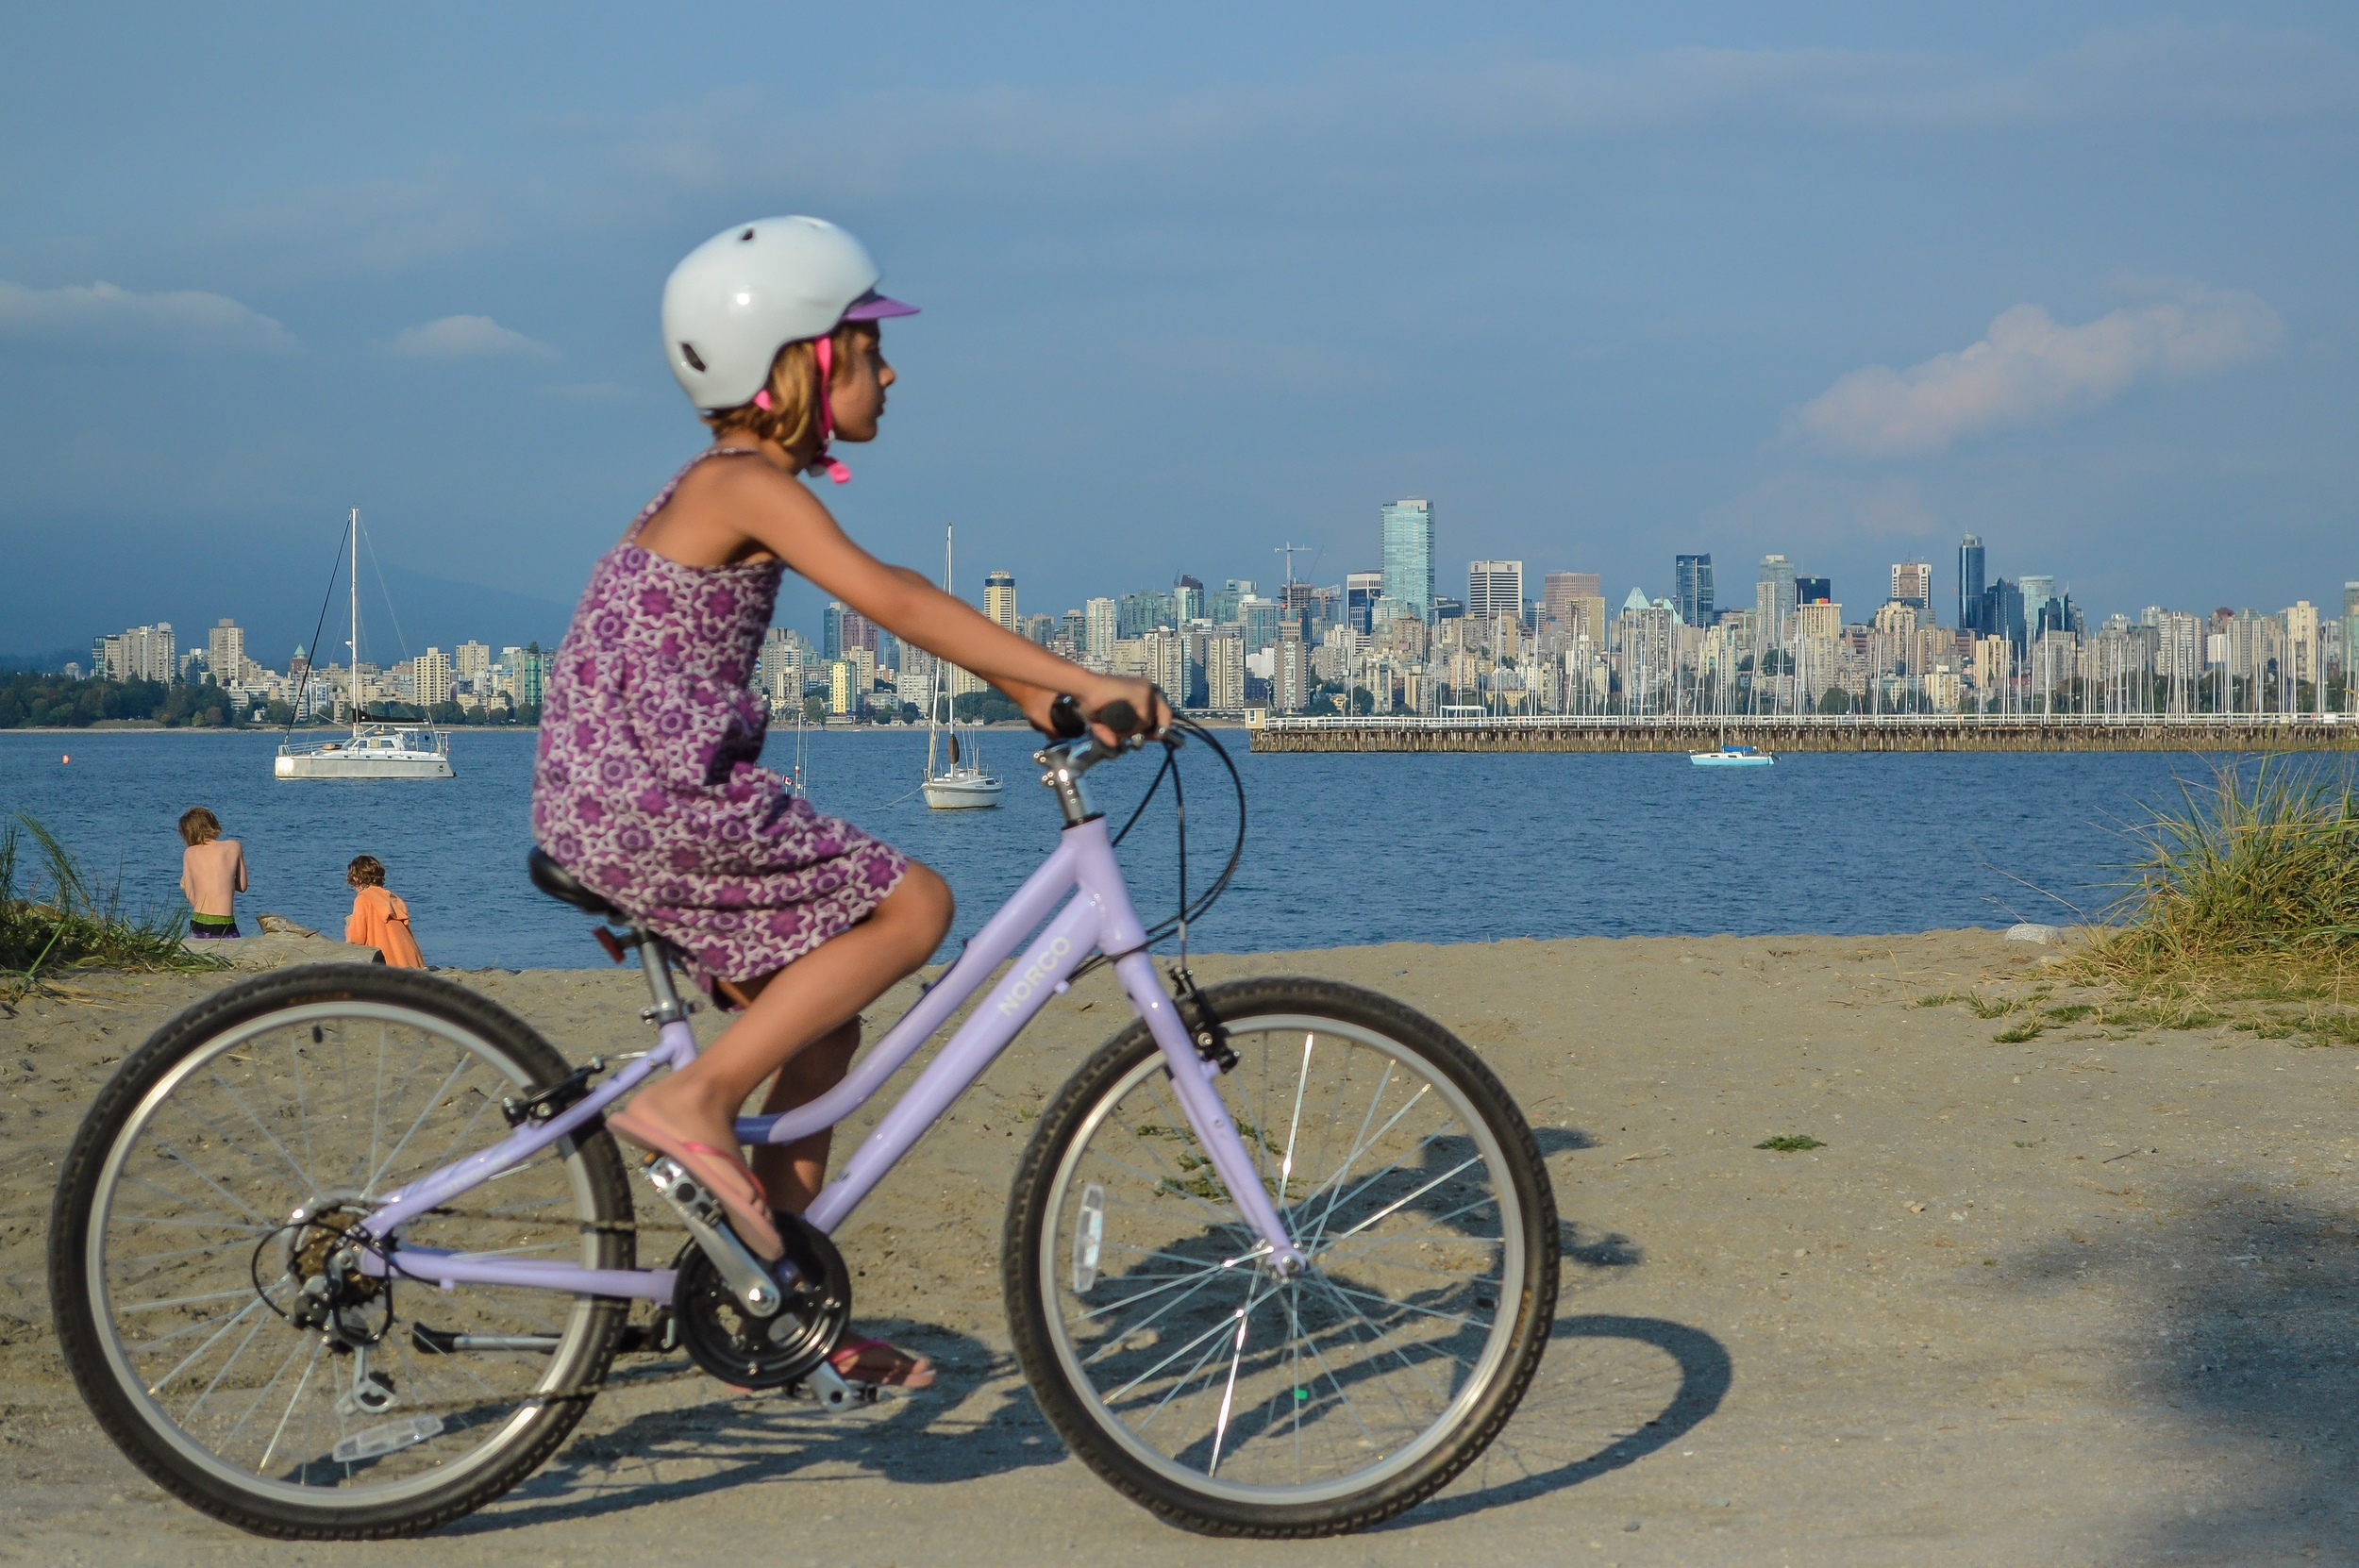 Our daughter showing how simple the freedom of two-wheeled travel is. (Photo by:  Chris Bruntlett )